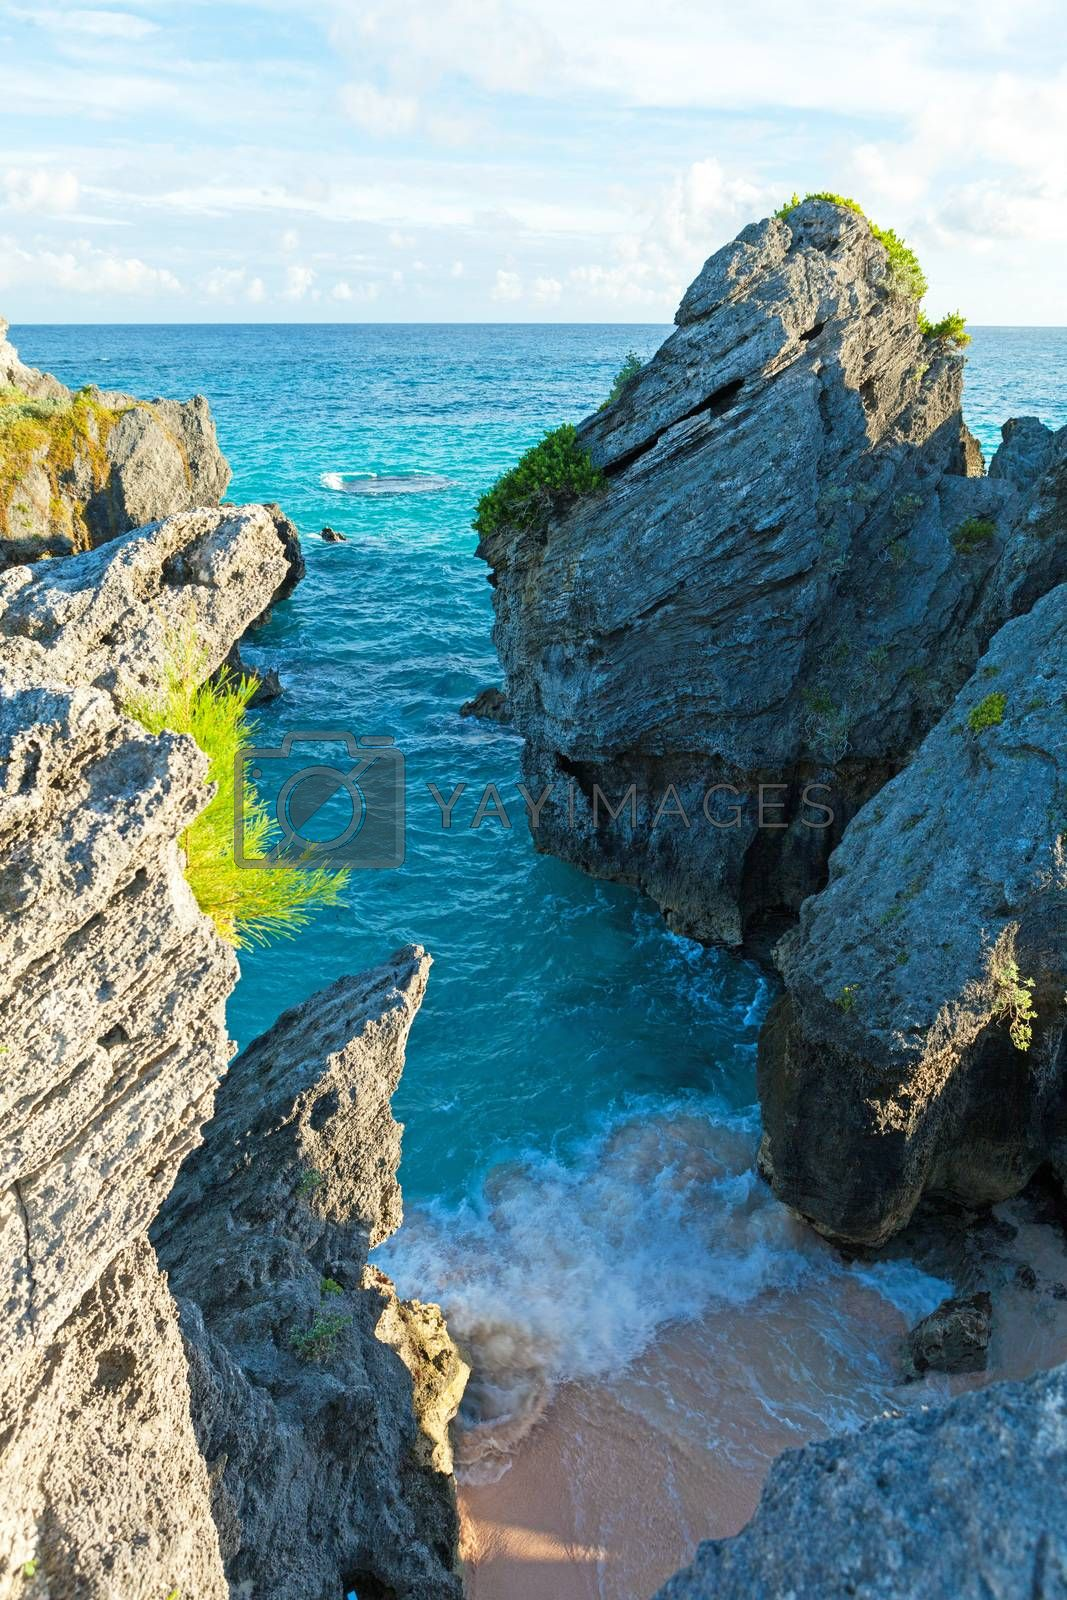 View of ocean cave rock formations located on the island of Bermuda at Jobsons Cove near Warwick Long Bay Beach